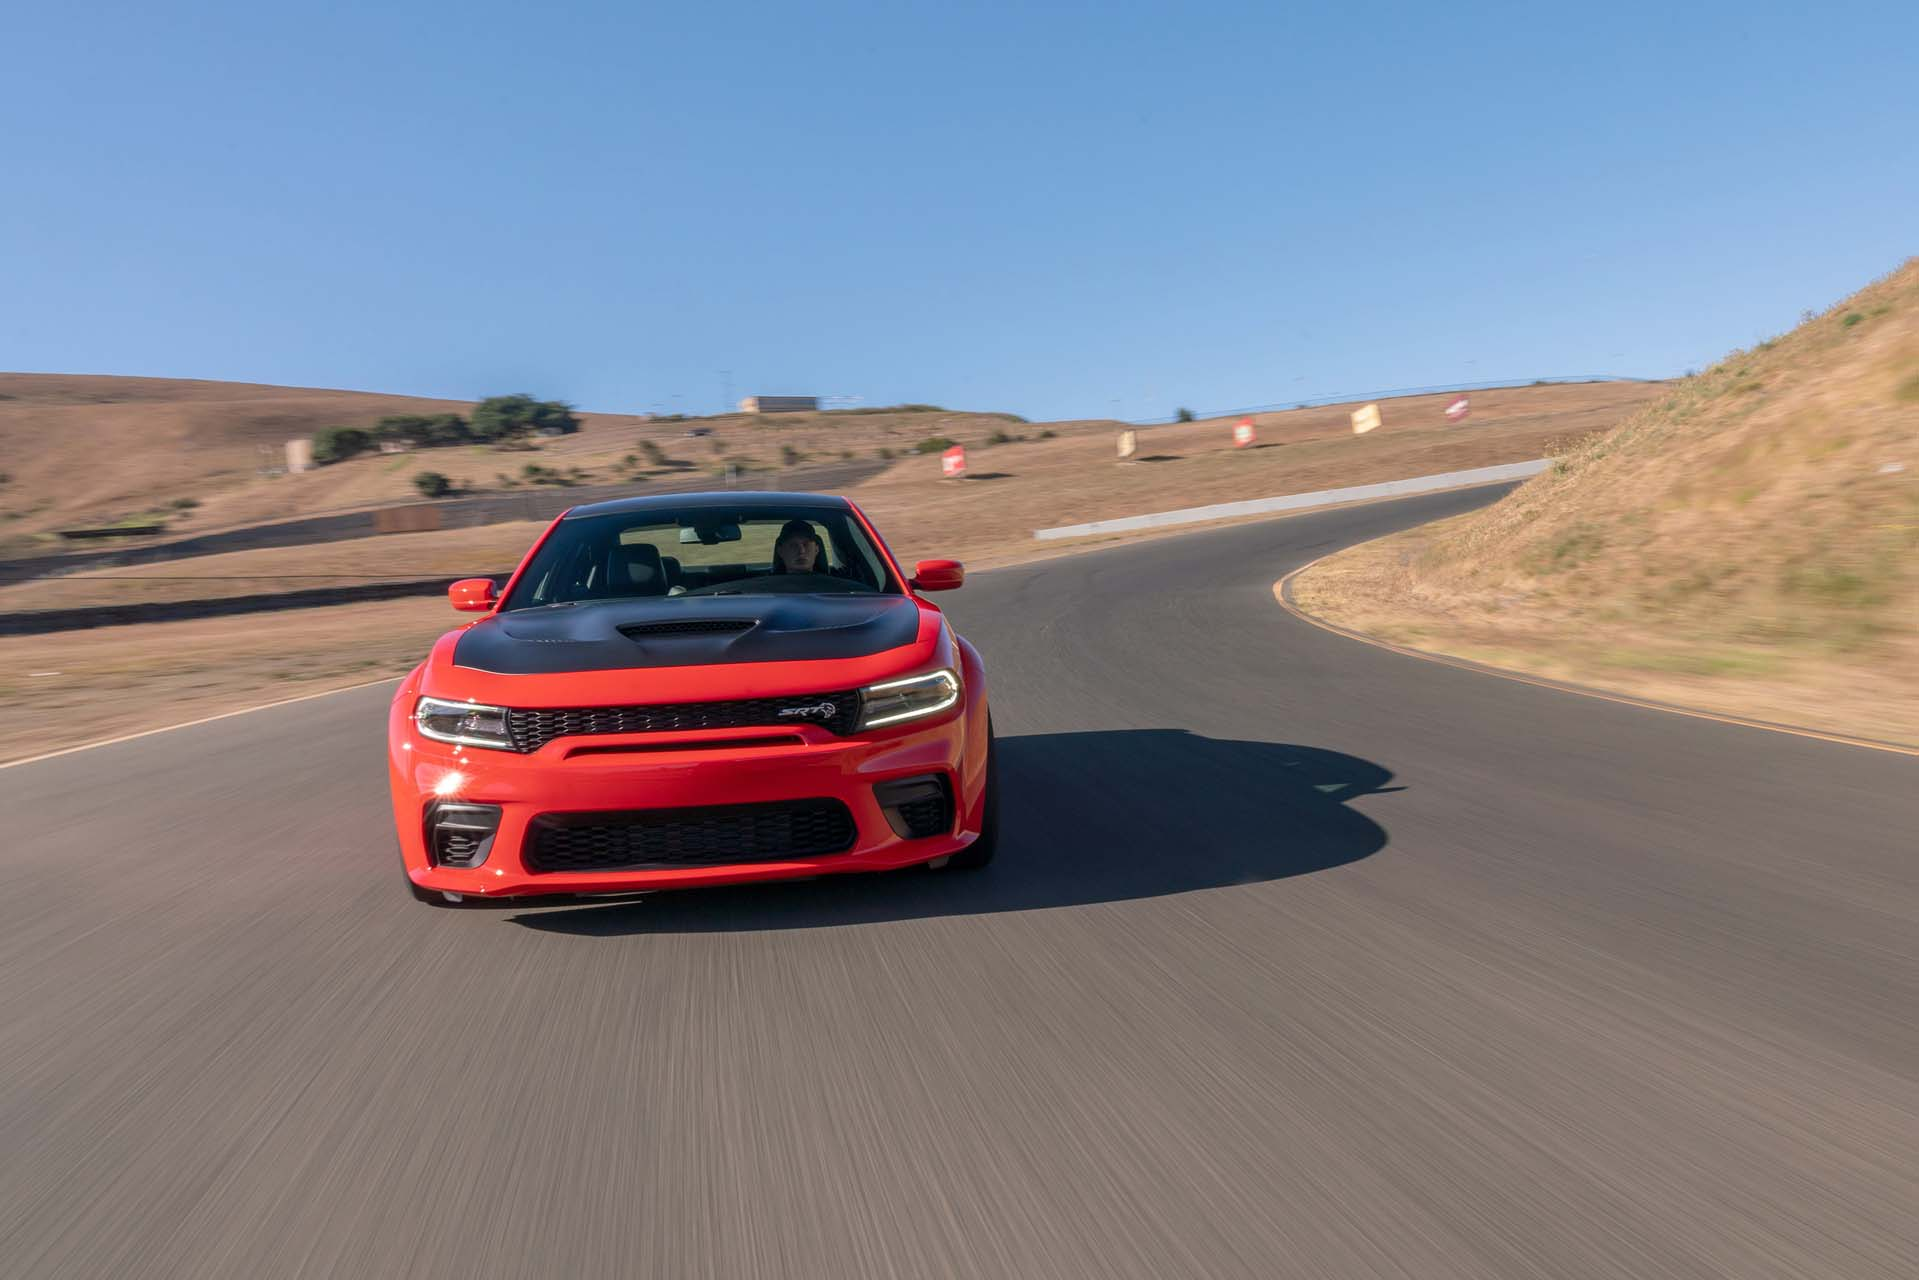 2020 Dodge Charger SRT Hellcat Widebody (Color: TorRed) Front Wallpapers (5)